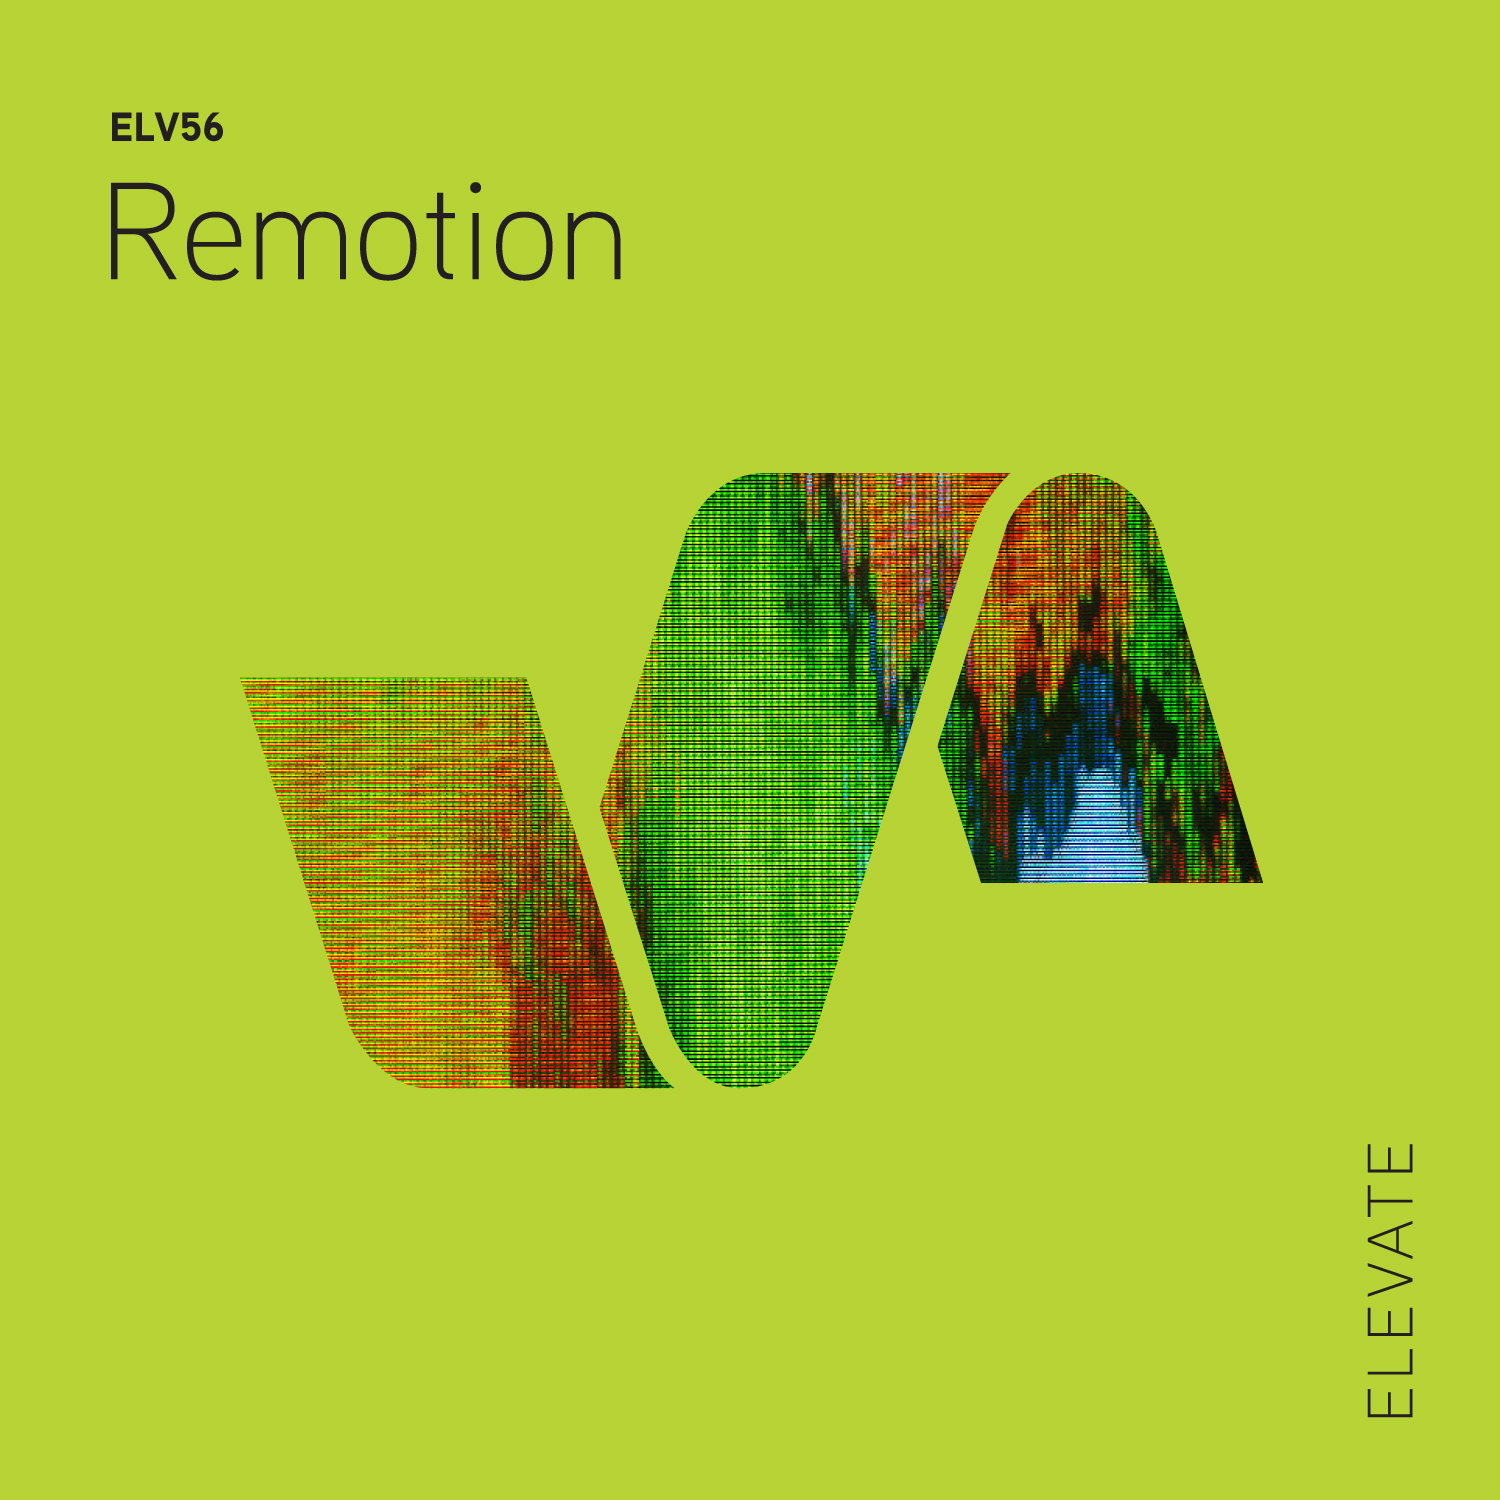 remotion-lucy-elevate-pig&dan-mooney-sleepwalker-pyramid